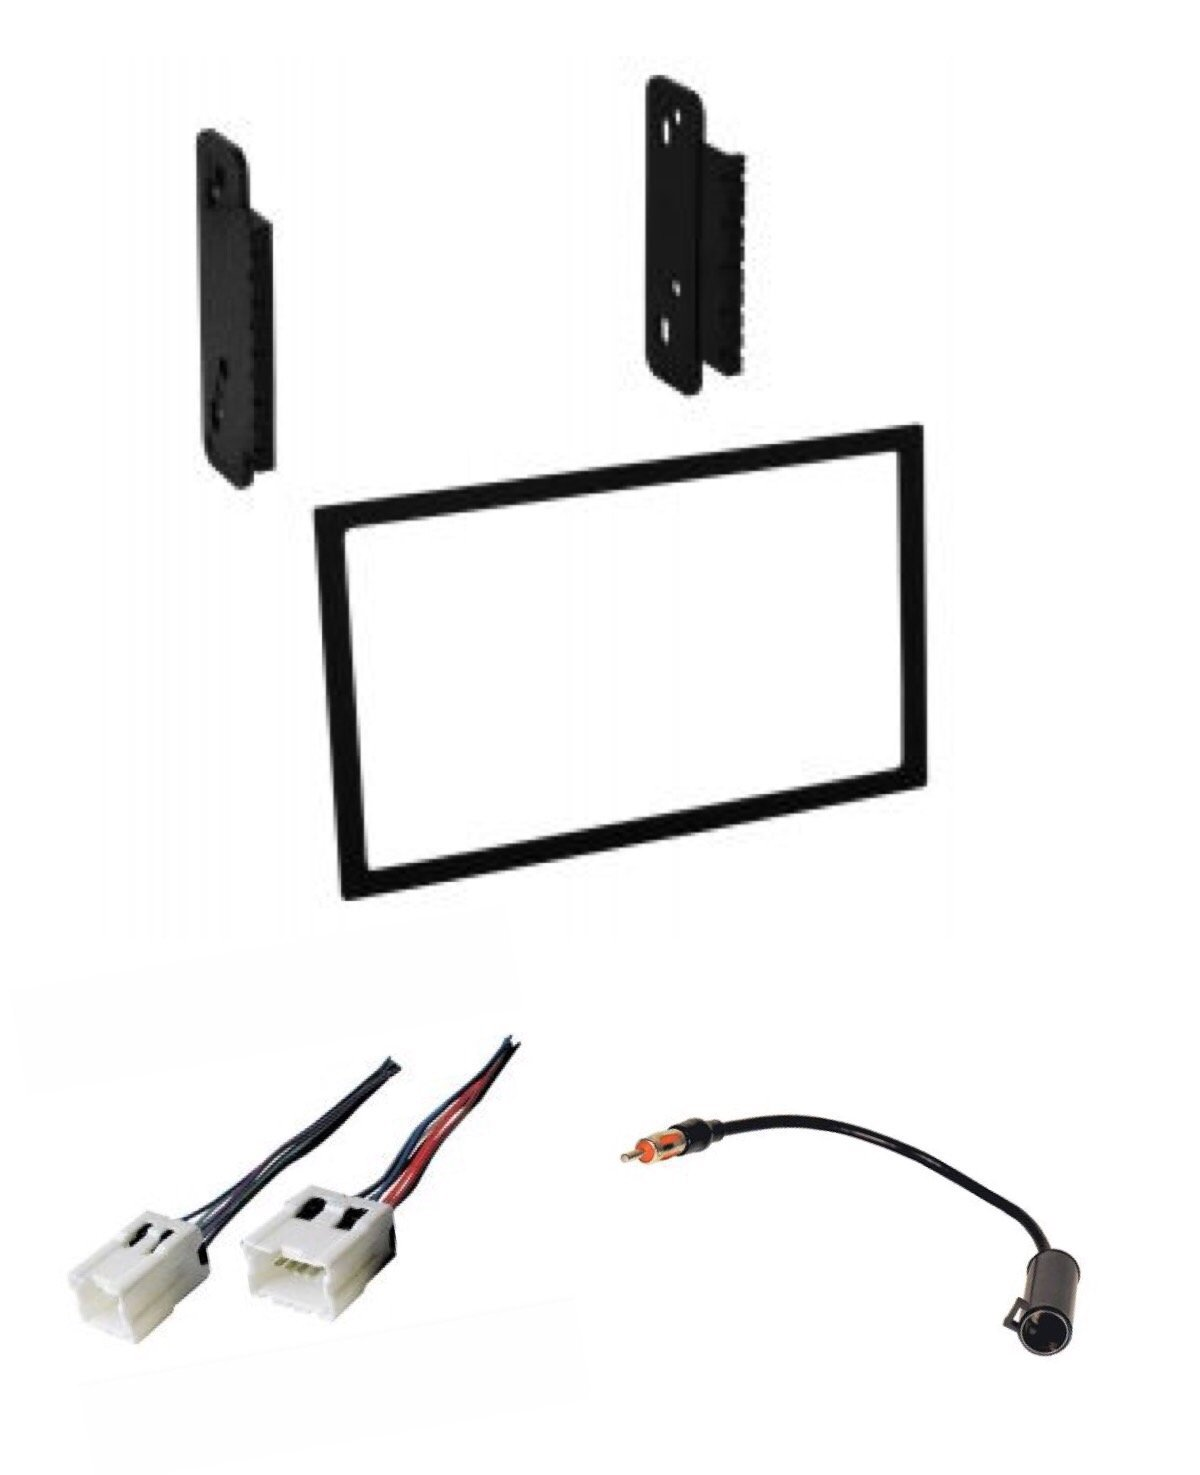 Asc Audio Car Stereo Wire Harness And Antenna Adapter To Aftermarket Gm Wiring Harnesses Install Dash Kit For Installing A